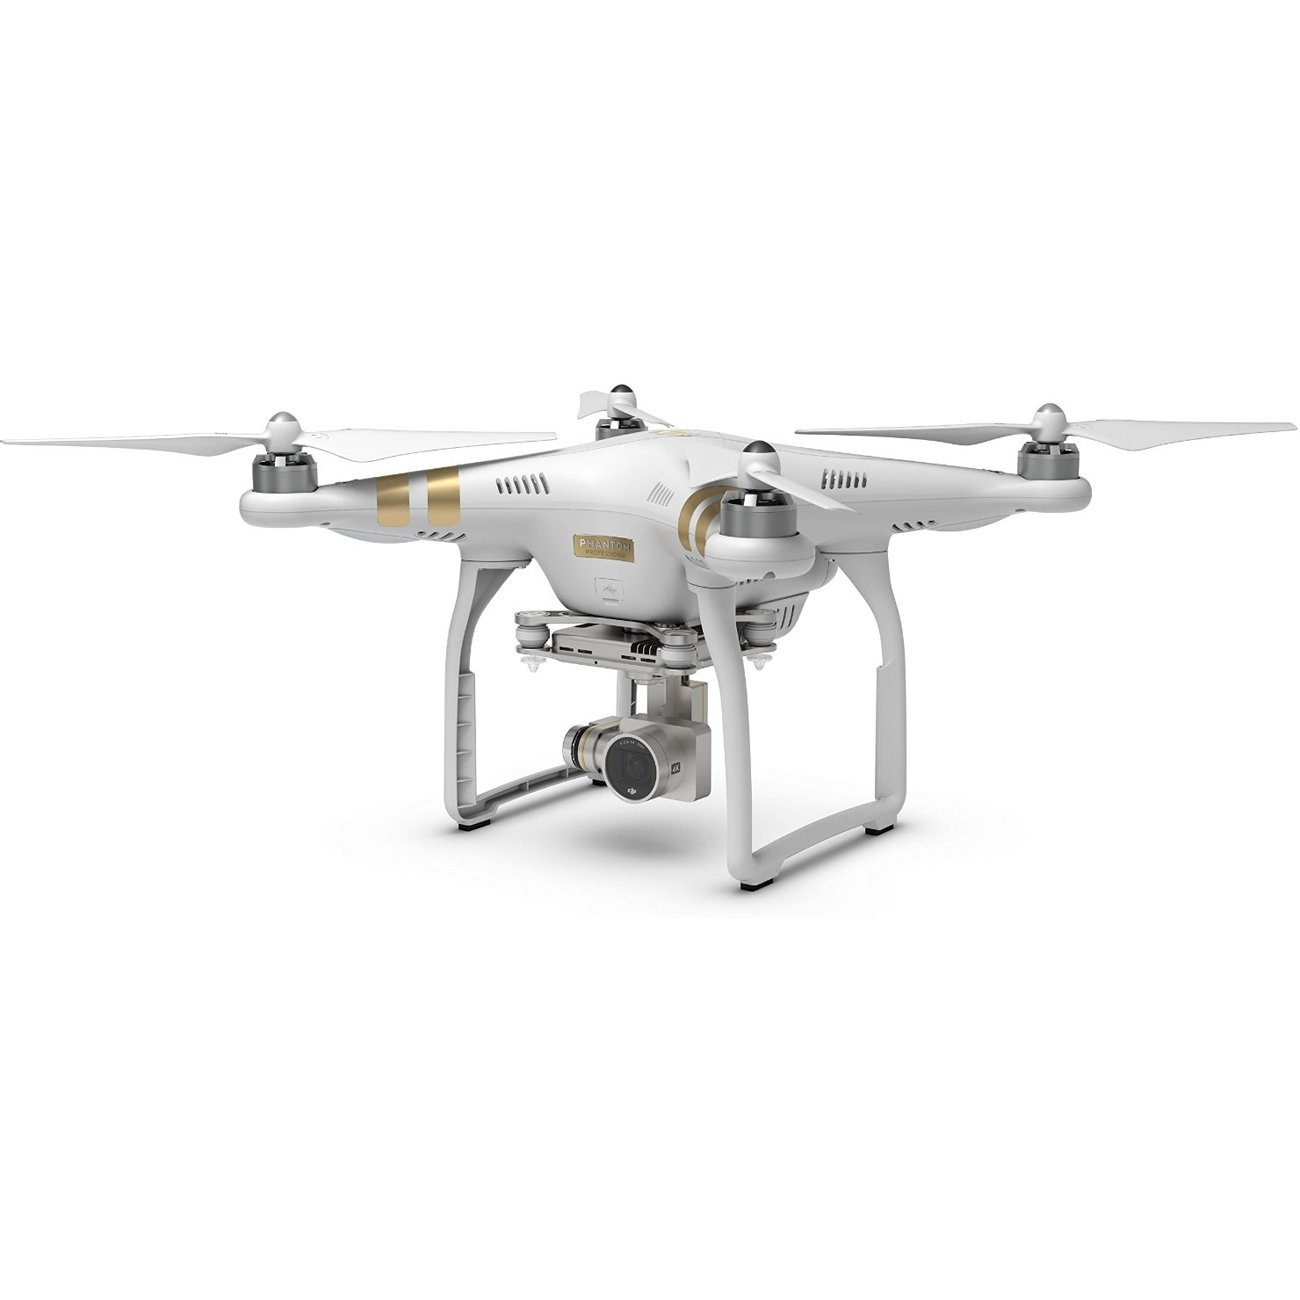 DJI Phantom 3 Professional Quadcopter Drone with 4K Camera